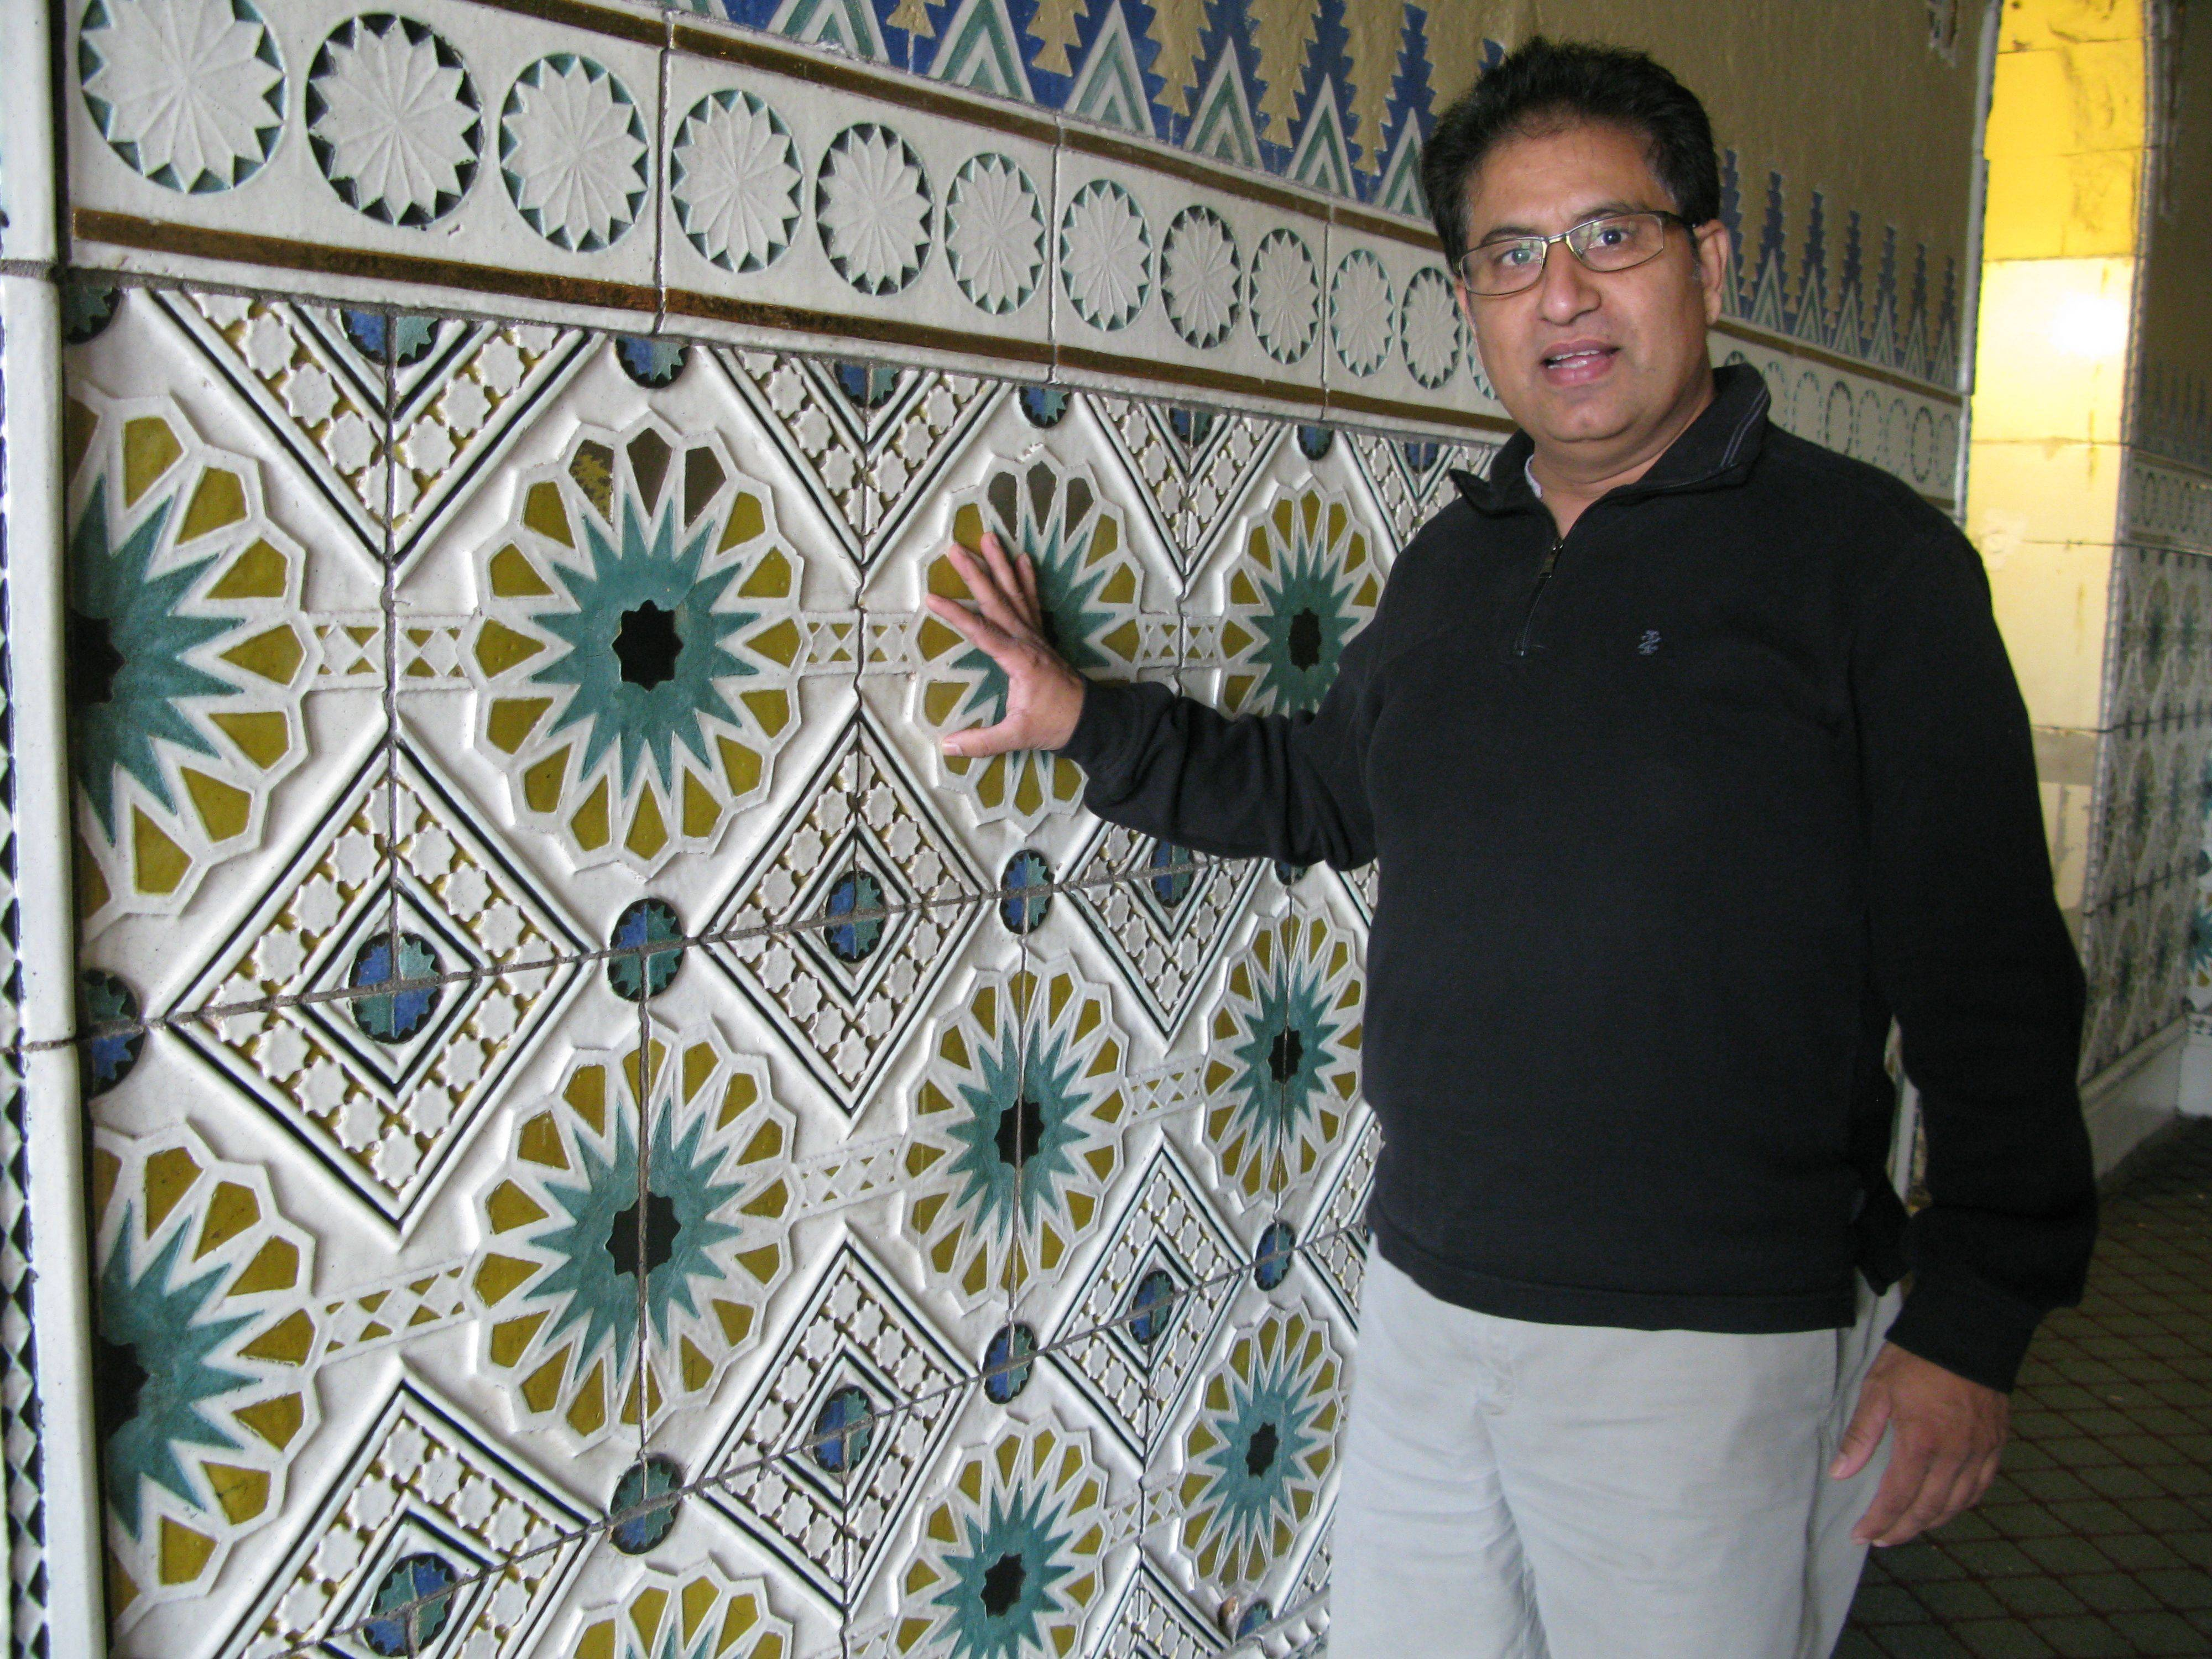 Des Plaines Theatre owner Dhitu Bhagwakar talks about the original terra cotta work that was uncovered underneath drywall and restored. The newly renovated downtown theater reopens Nov. 11 with live performances, as well as Bollywood and Hollywood movie showings.